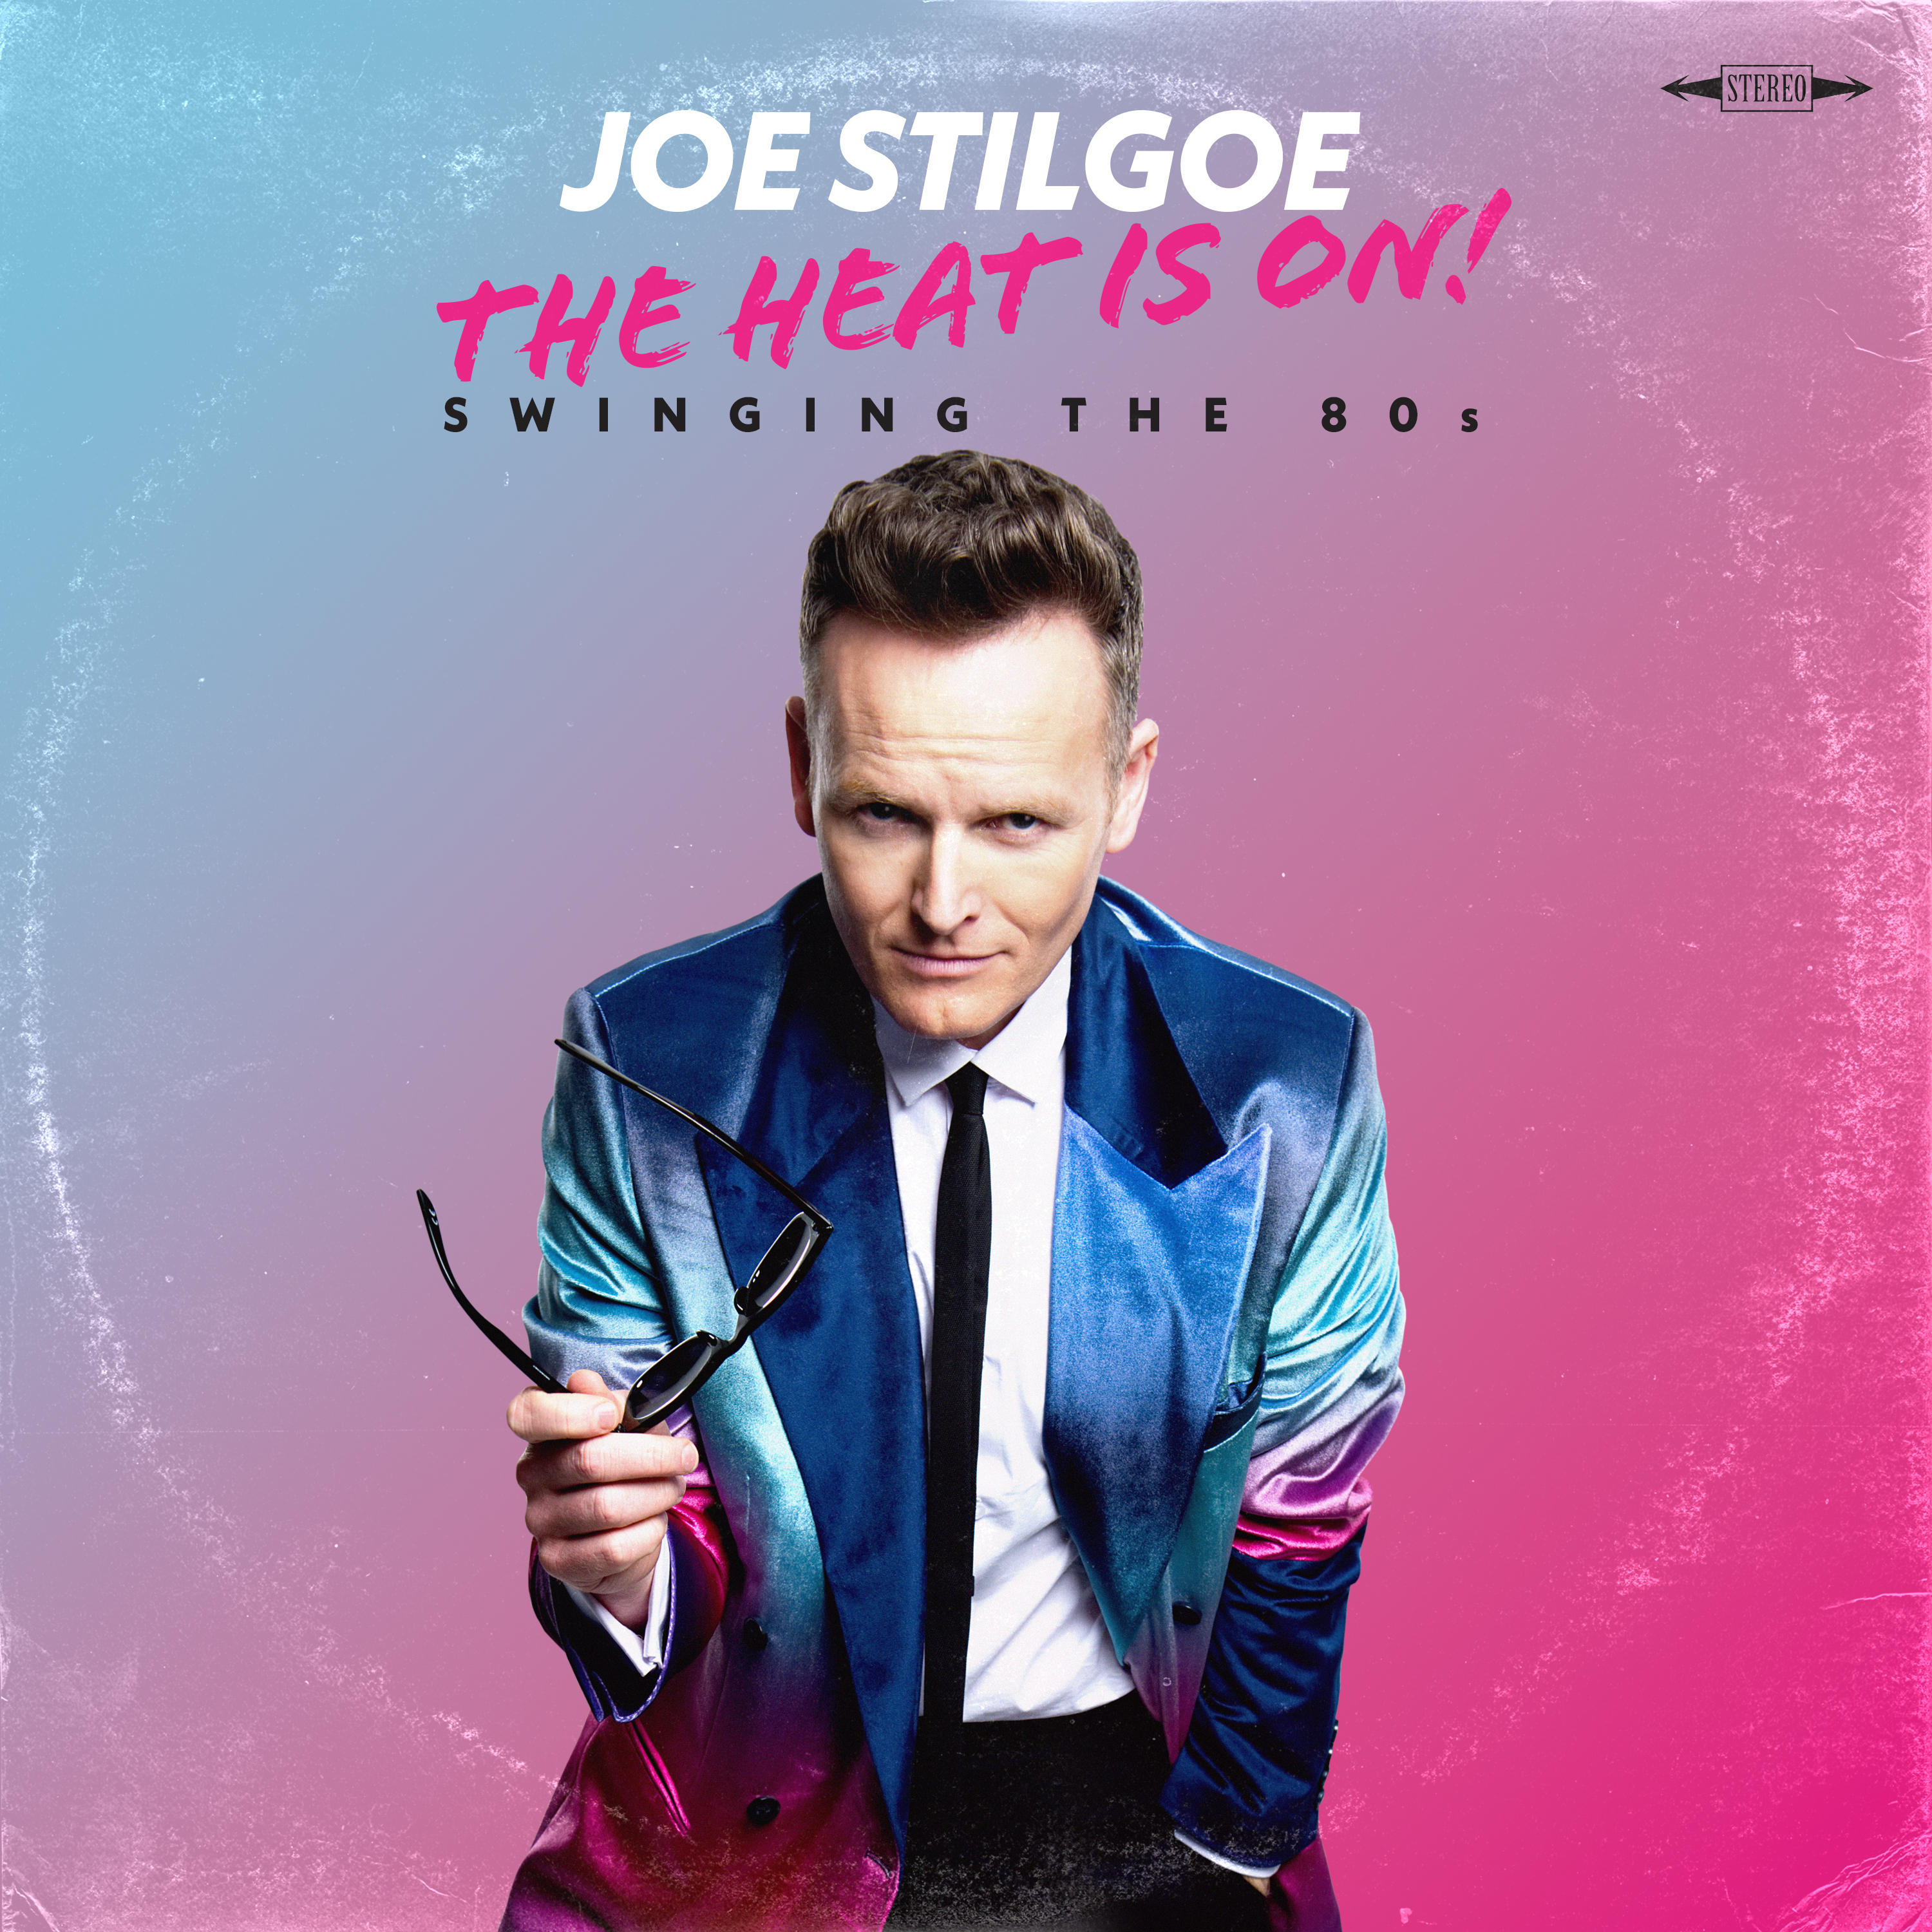 The Heat is on - Swinging the 80s